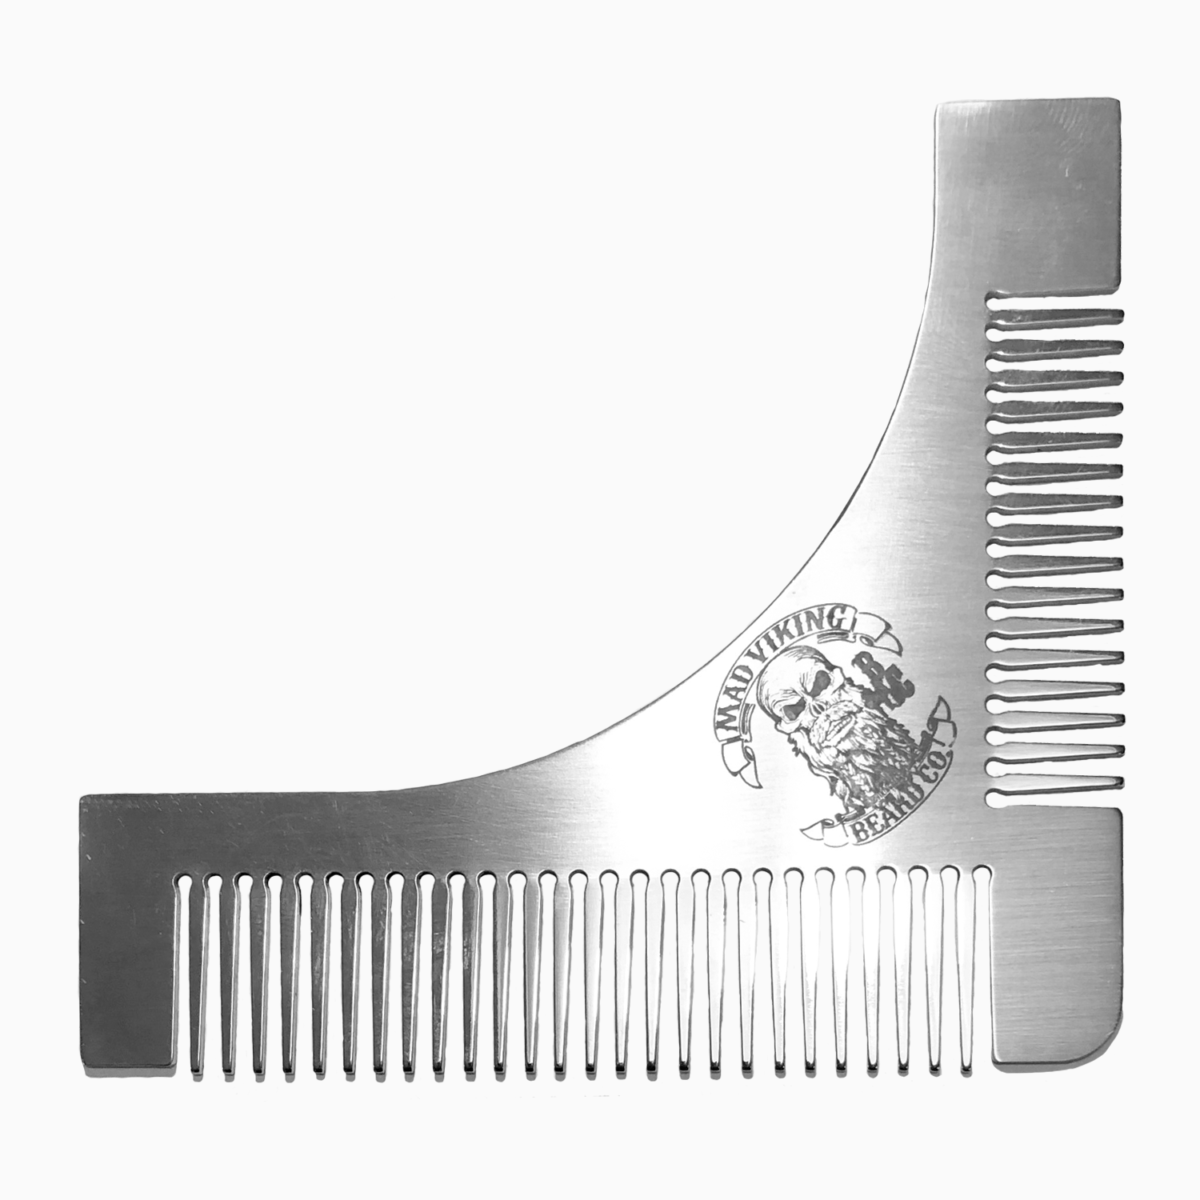 The Mad Viking Beard Shaping & Styling Tool